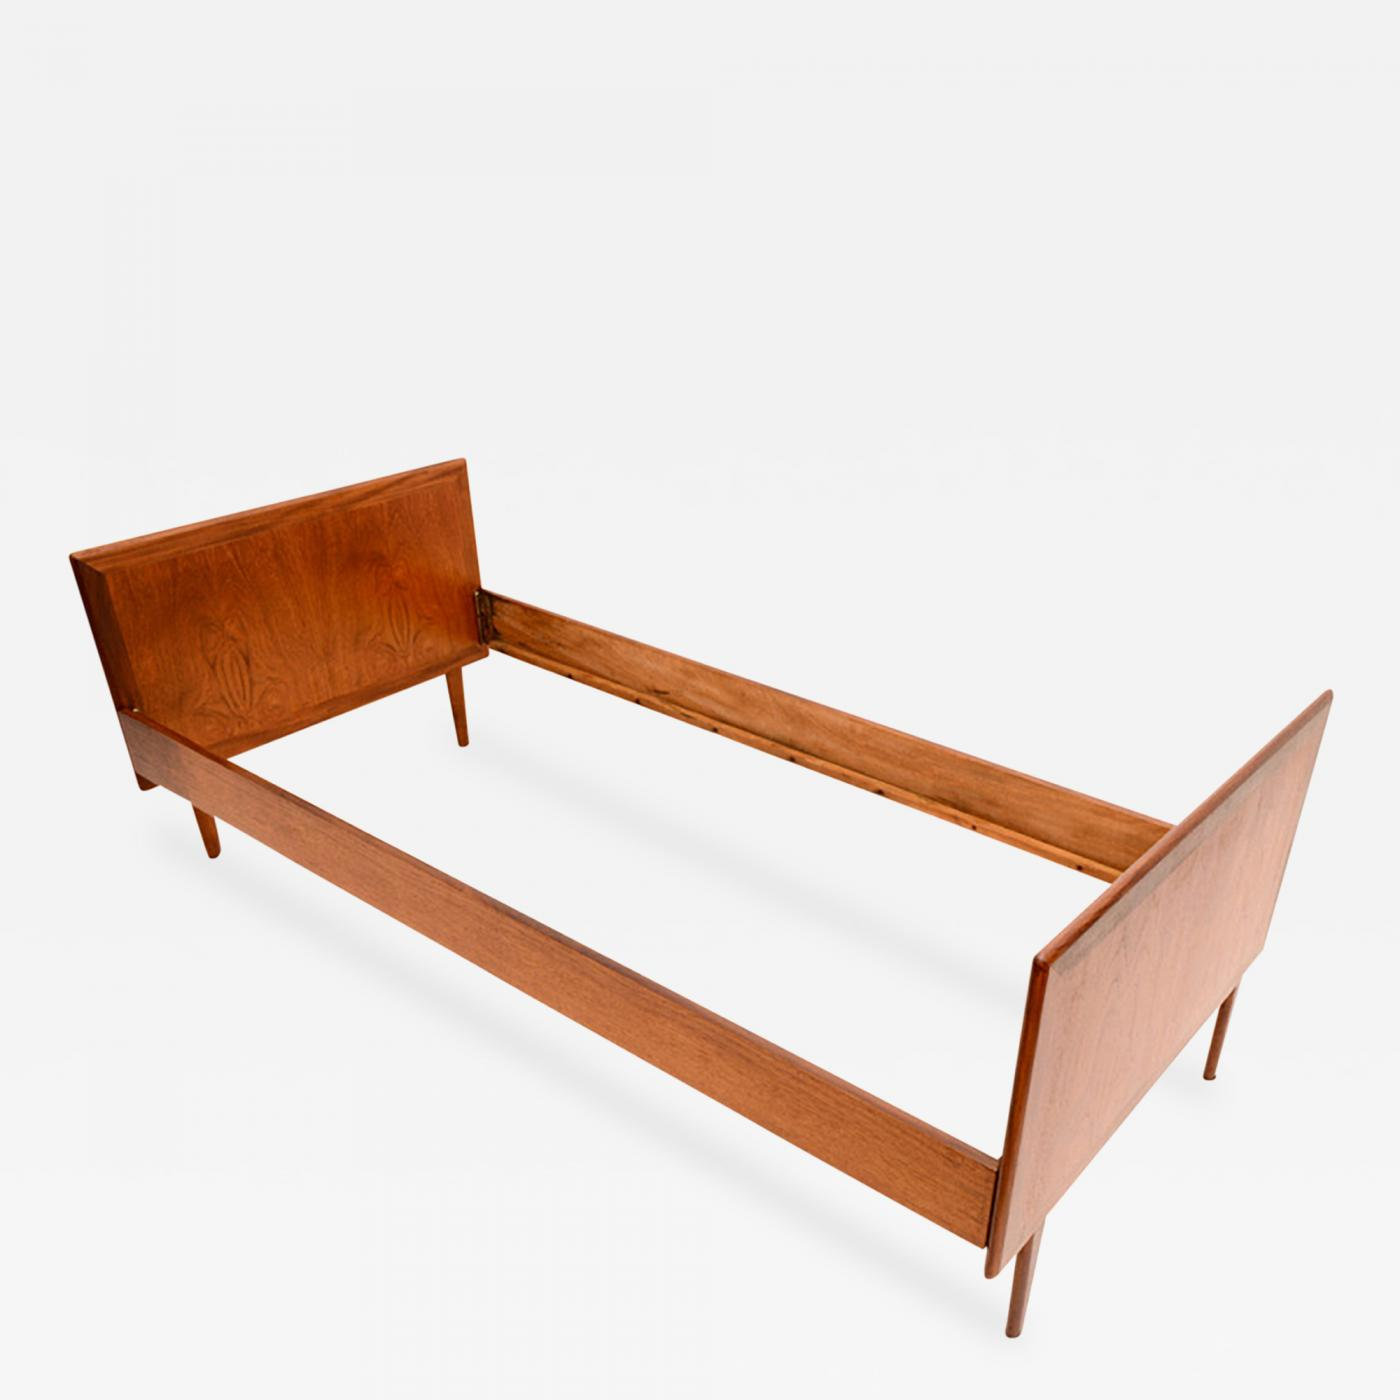 Modern twin bed frame - Listings Furniture Beds Screens Other Beds Danish Modern Teak Single Twin